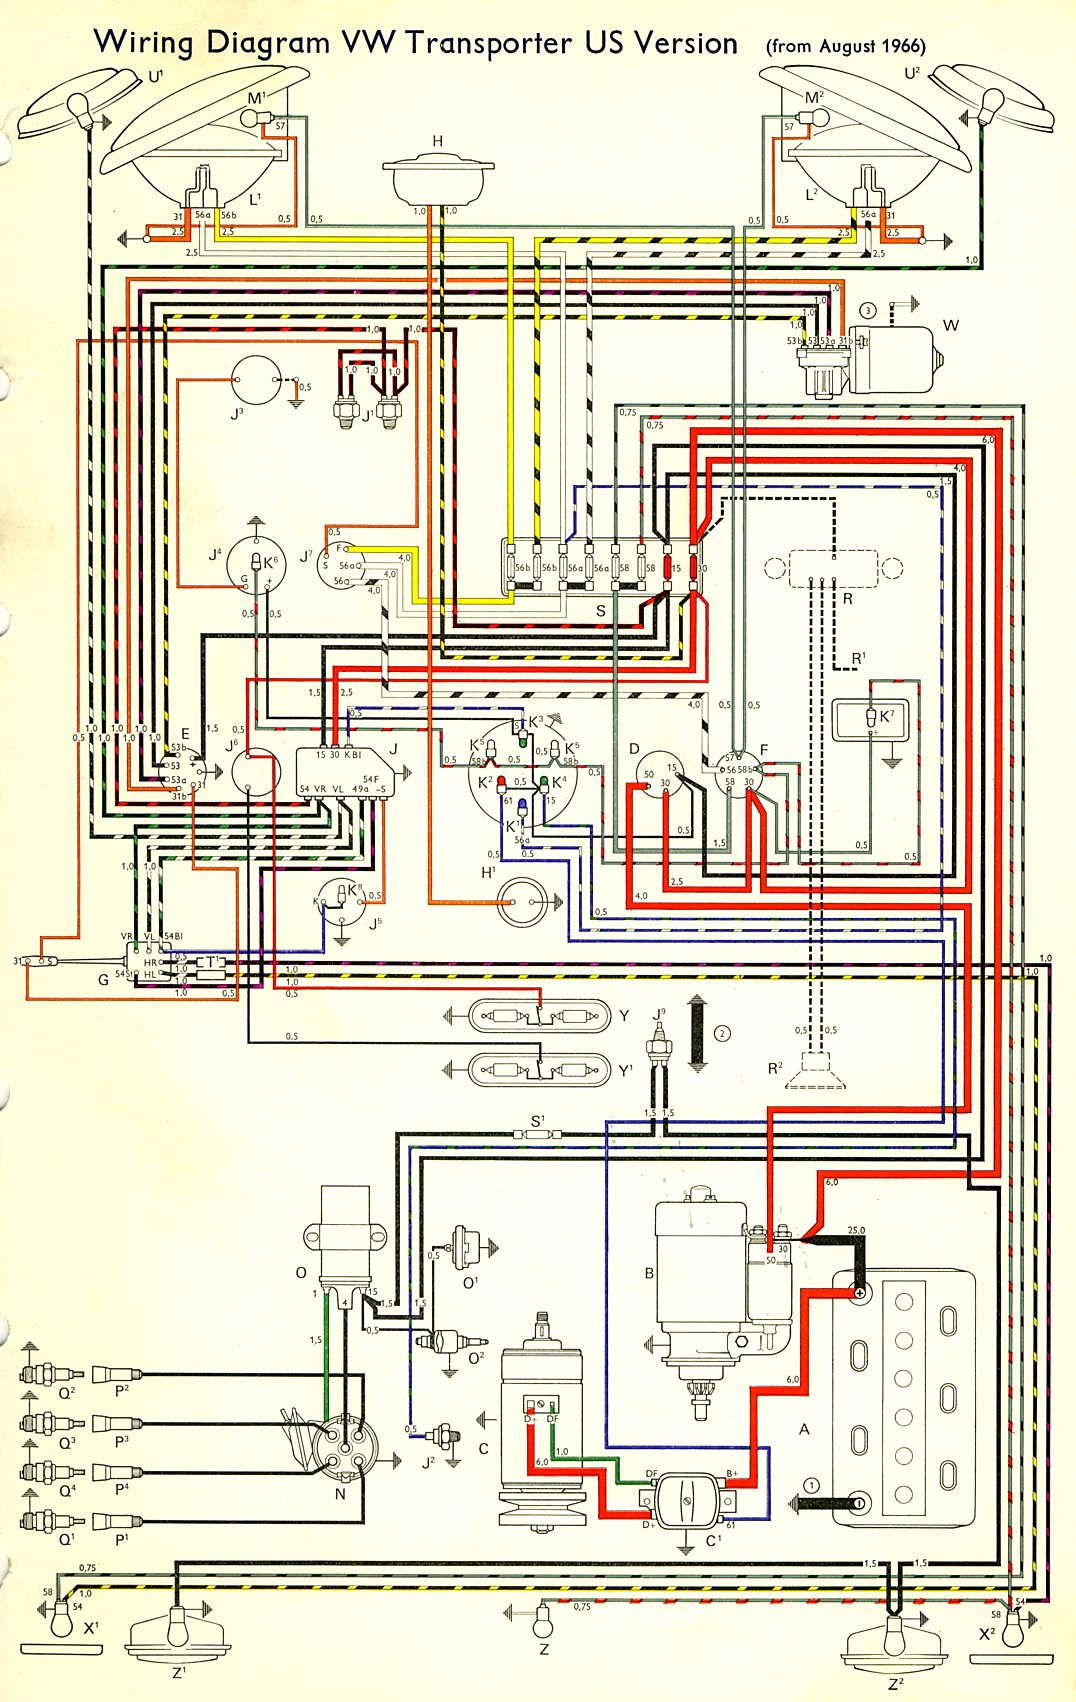 bus_67_USA 67 vw bus wiring harness 71 vw wiring harness \u2022 wiring diagrams vw type 3 wiring harness at aneh.co